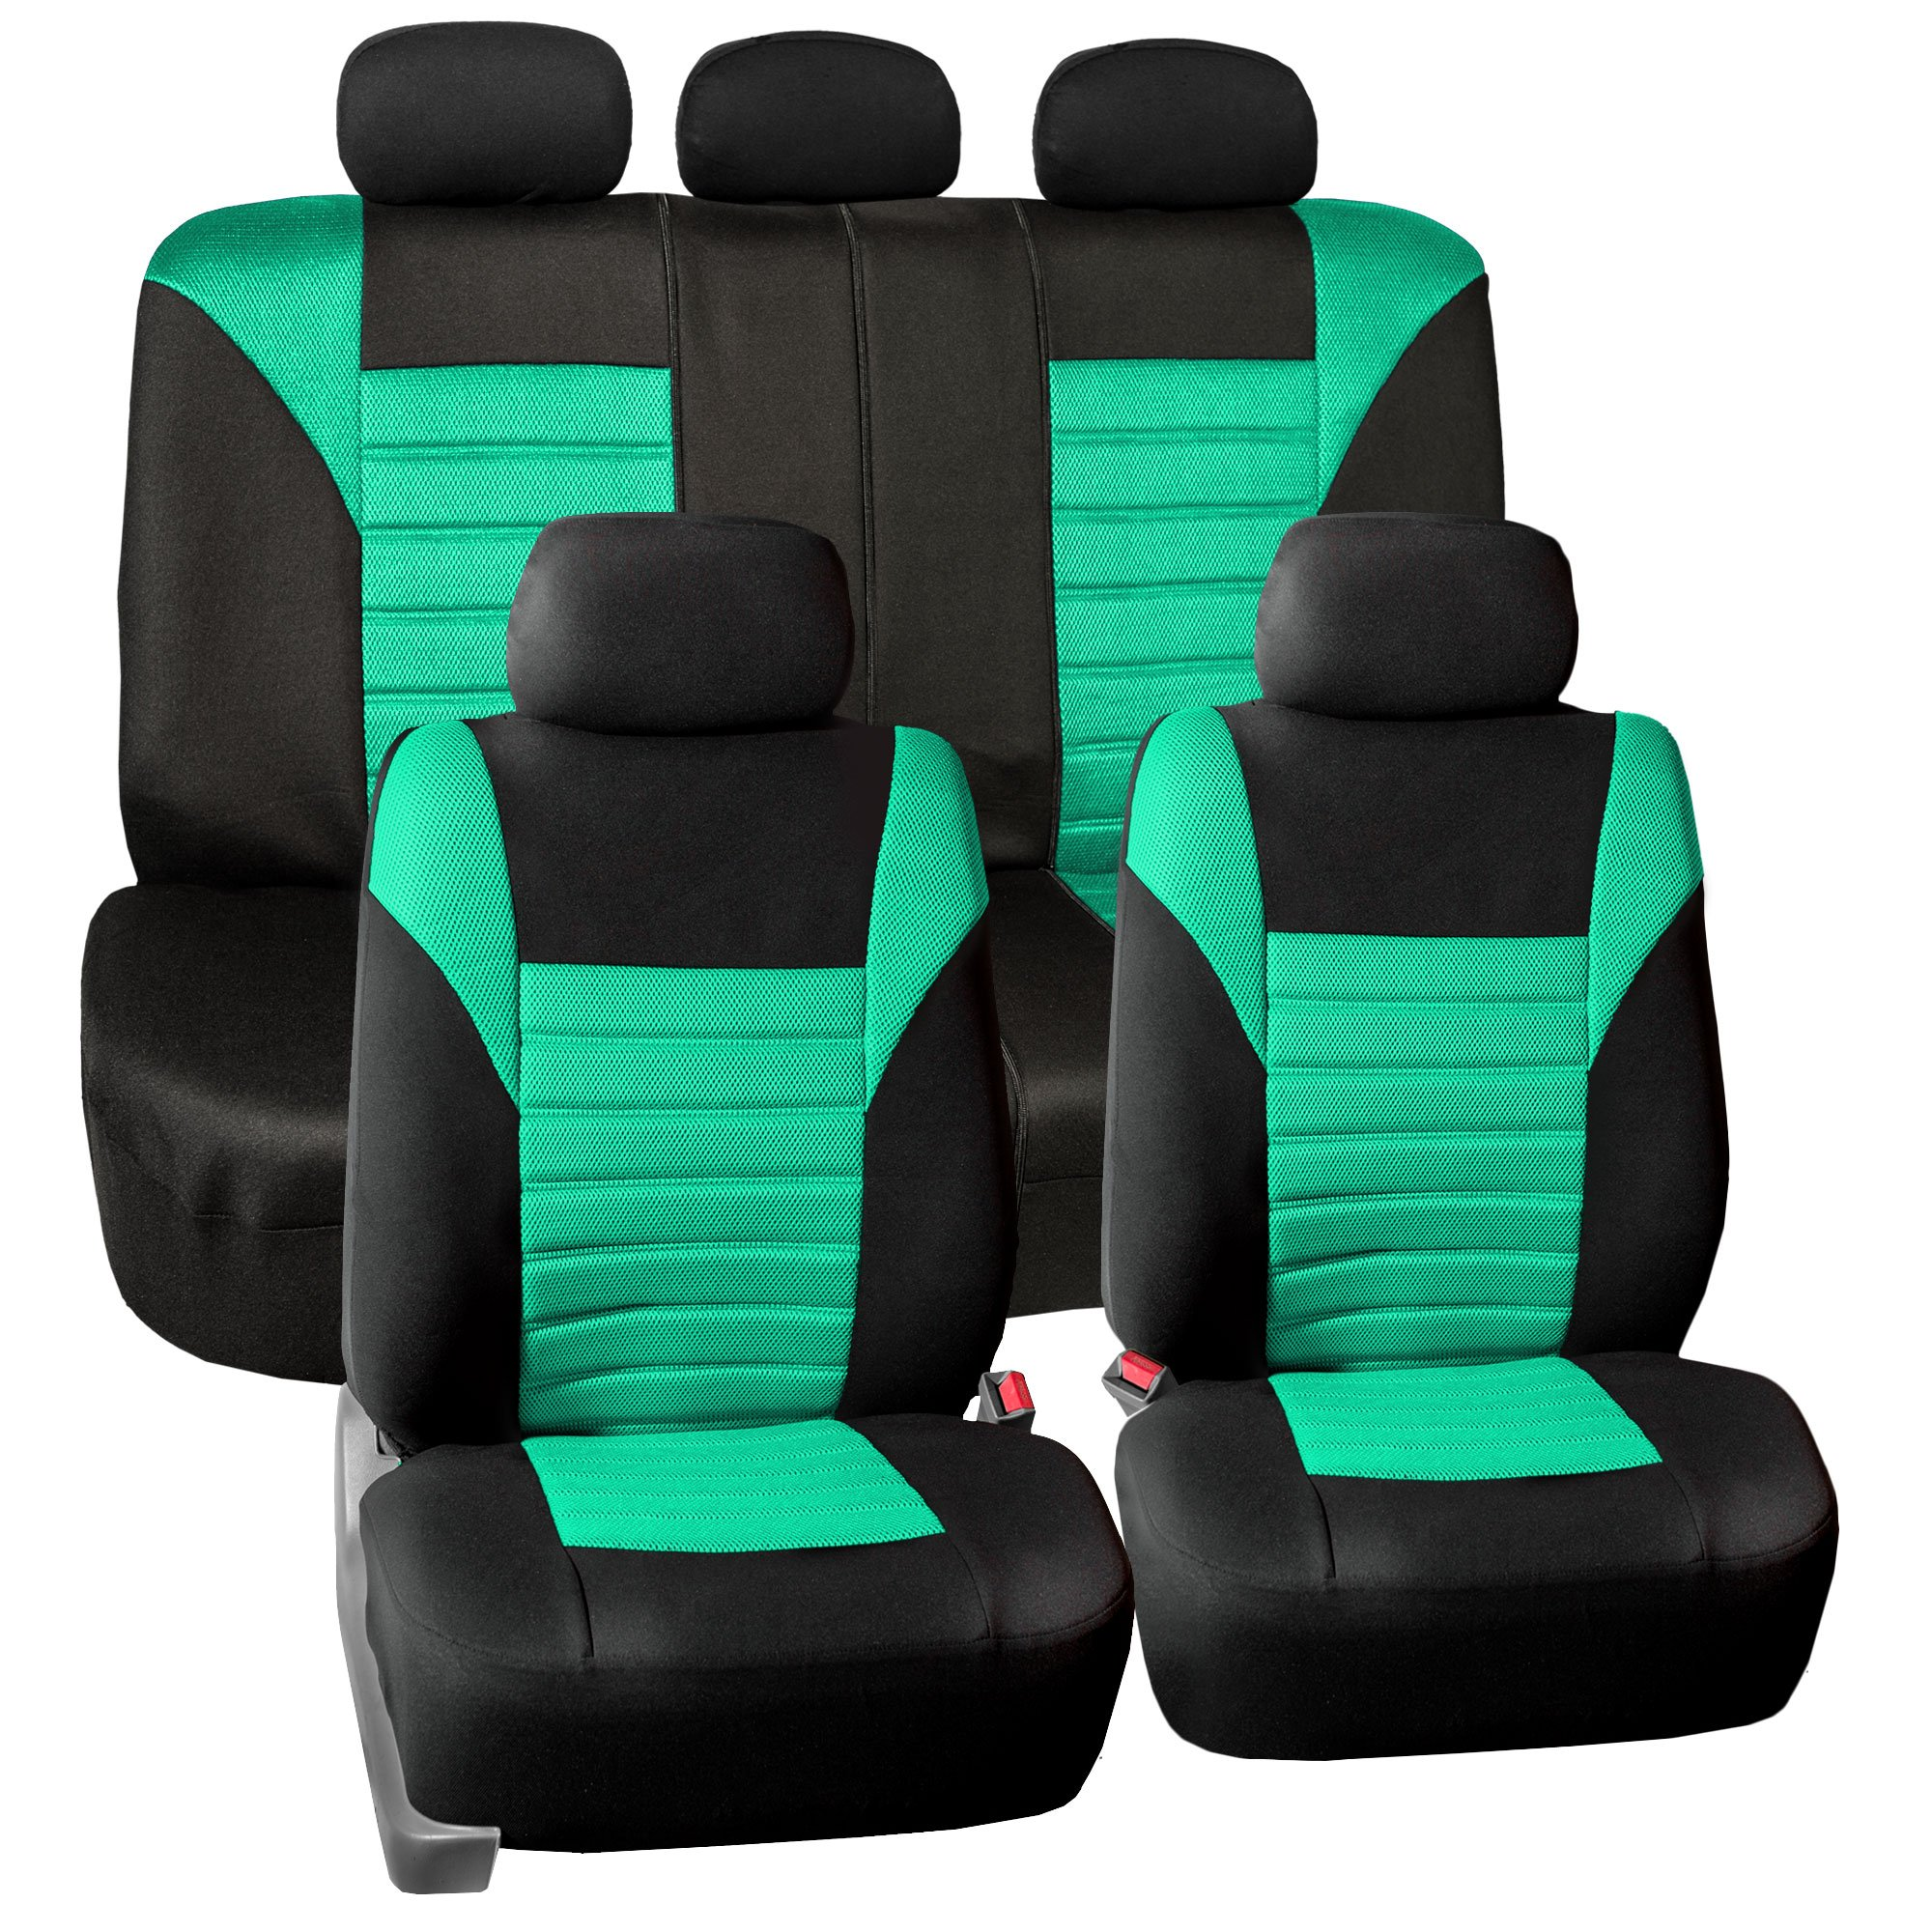 FH GROUP FH-FB068115 Premium 3D Air Mesh Seat Covers Full Set (Airbag & Split Ready), Mint/Black Color- Fit Most Car, Truck, SUV, or Van by FH Group